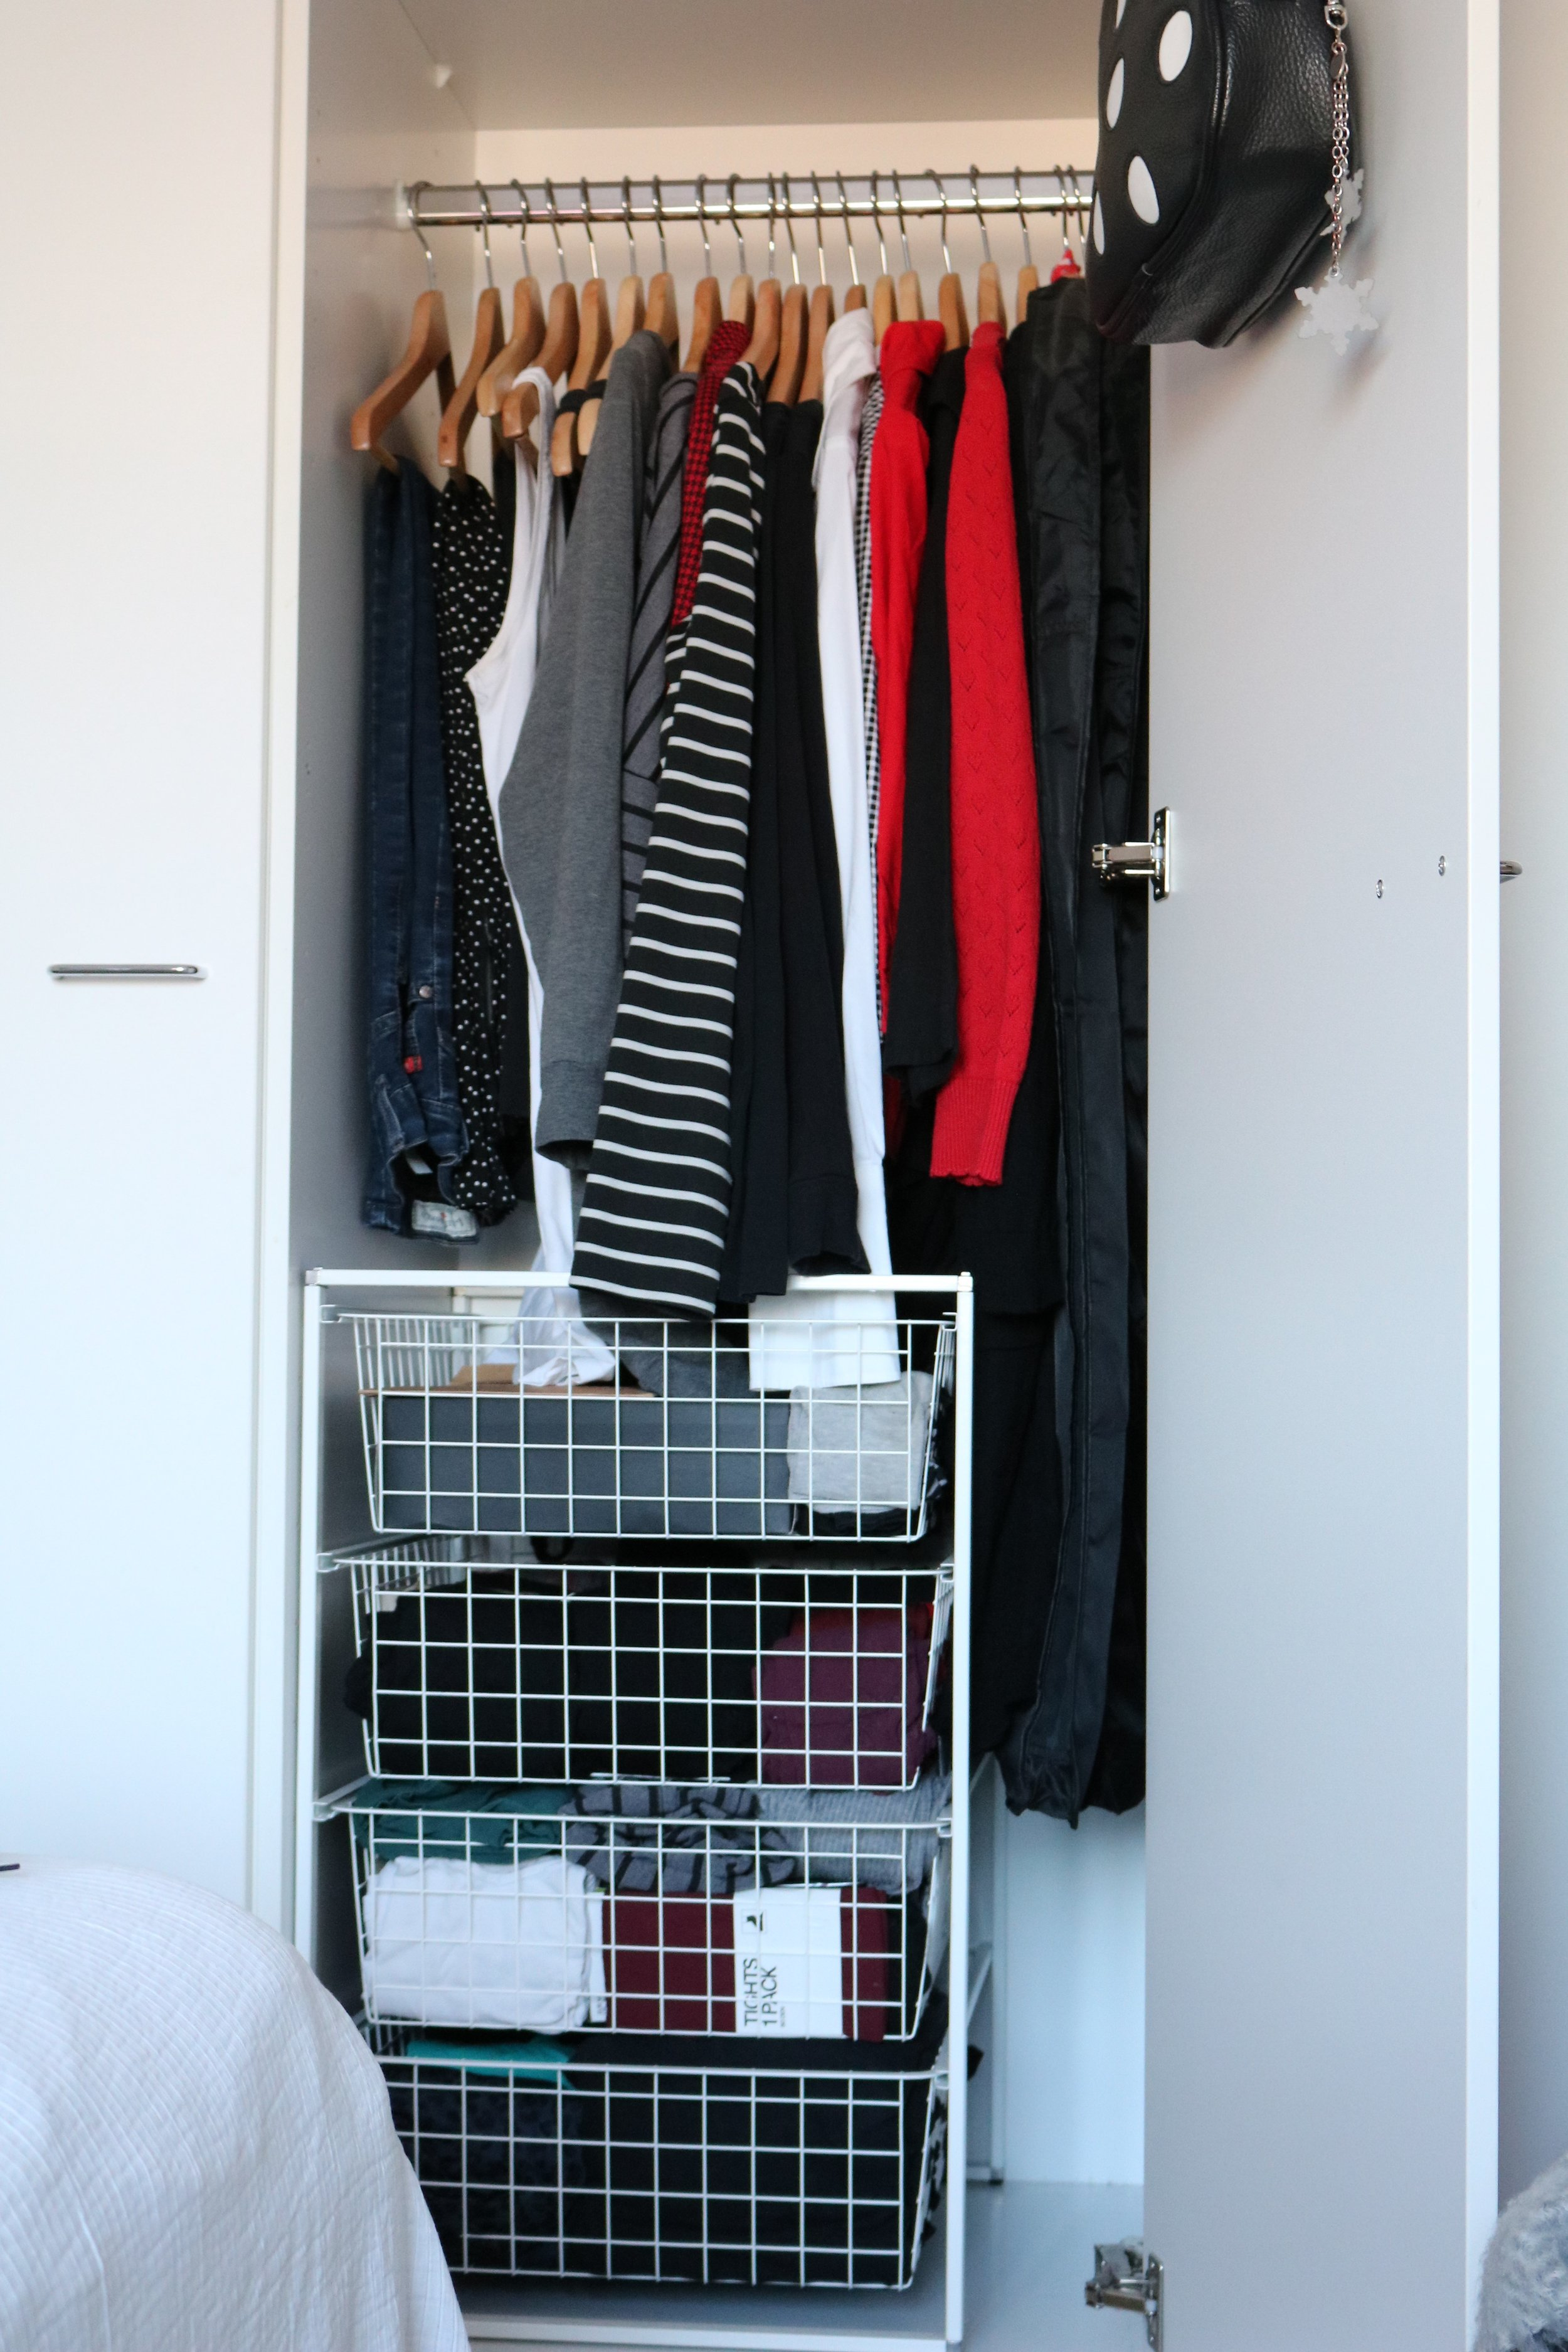 Everything in regular use, excluding shoes and outerwear, fits in the closet quite comfortably. I keep a few dresses in reserve inside the clothes covers on the right.